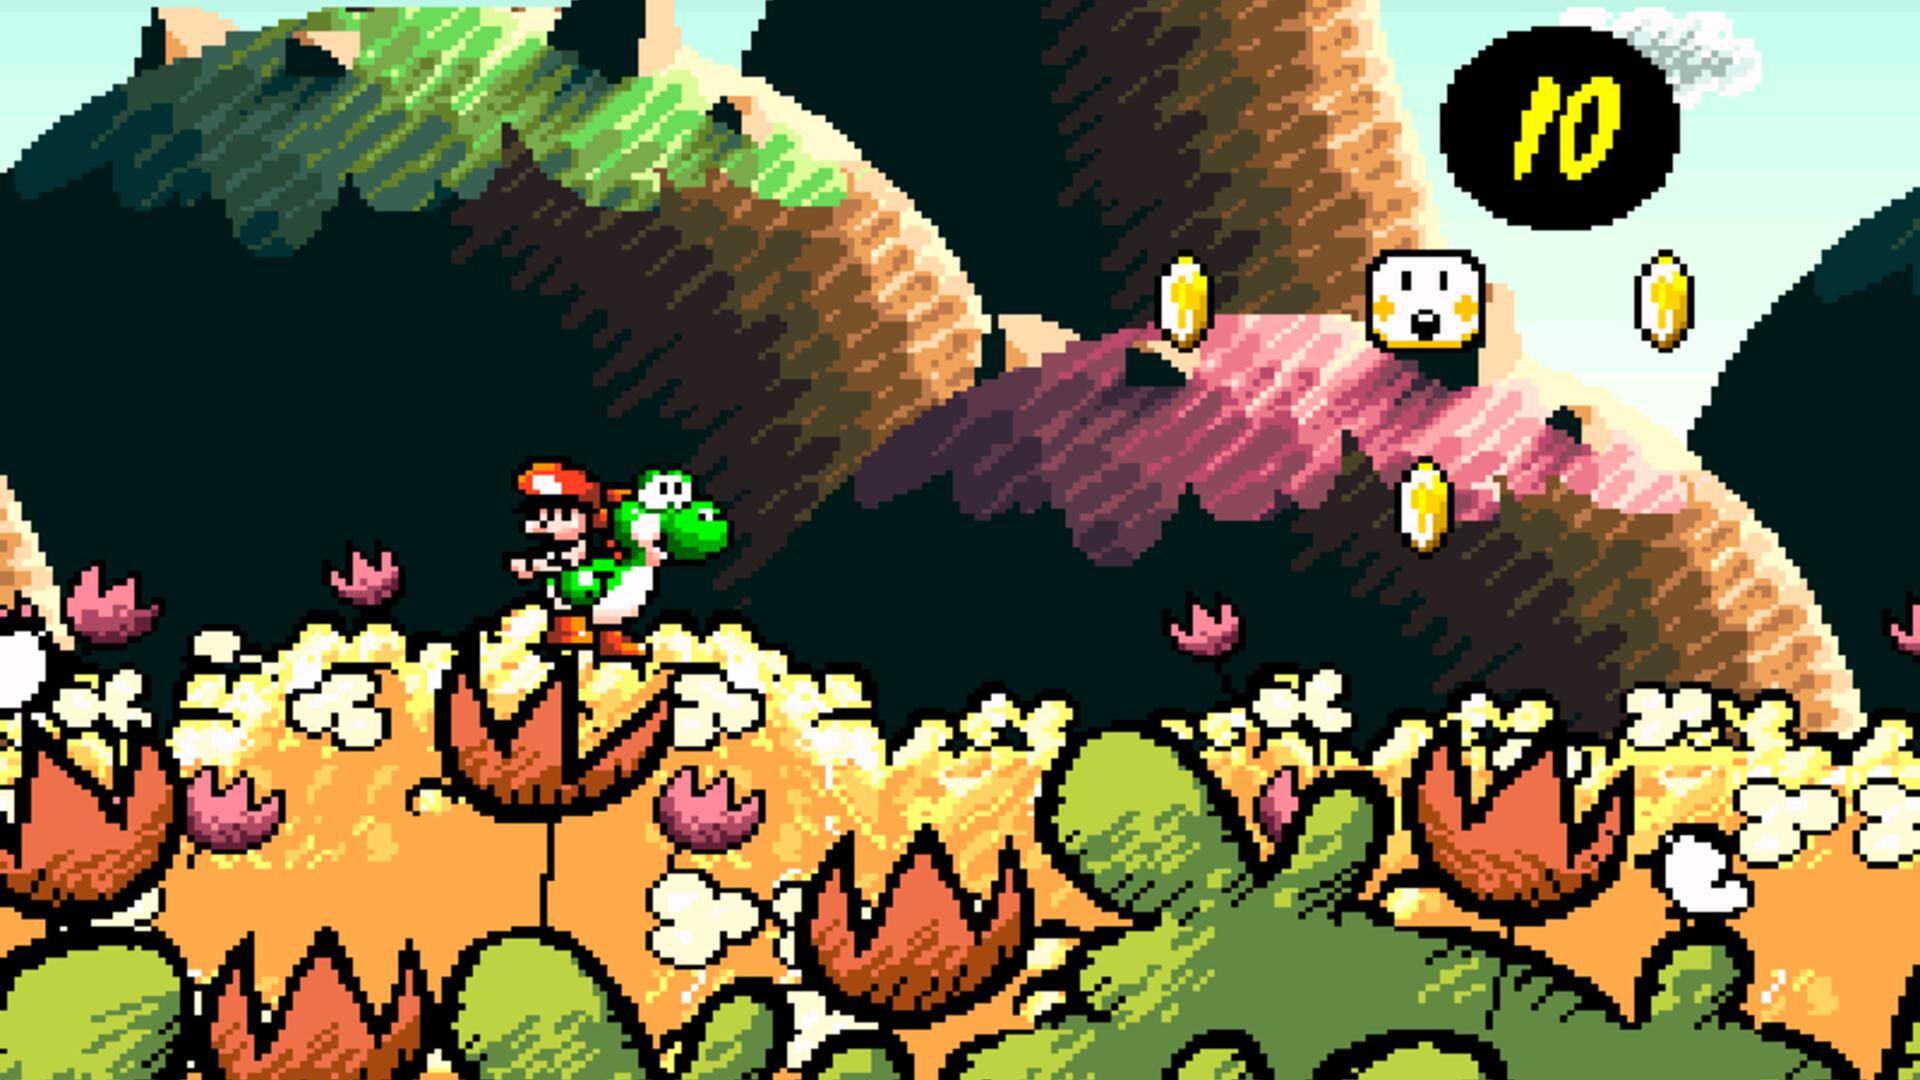 Yoshi's Island's Hand-Drawn Art Style Was Done Pixel by Pixel